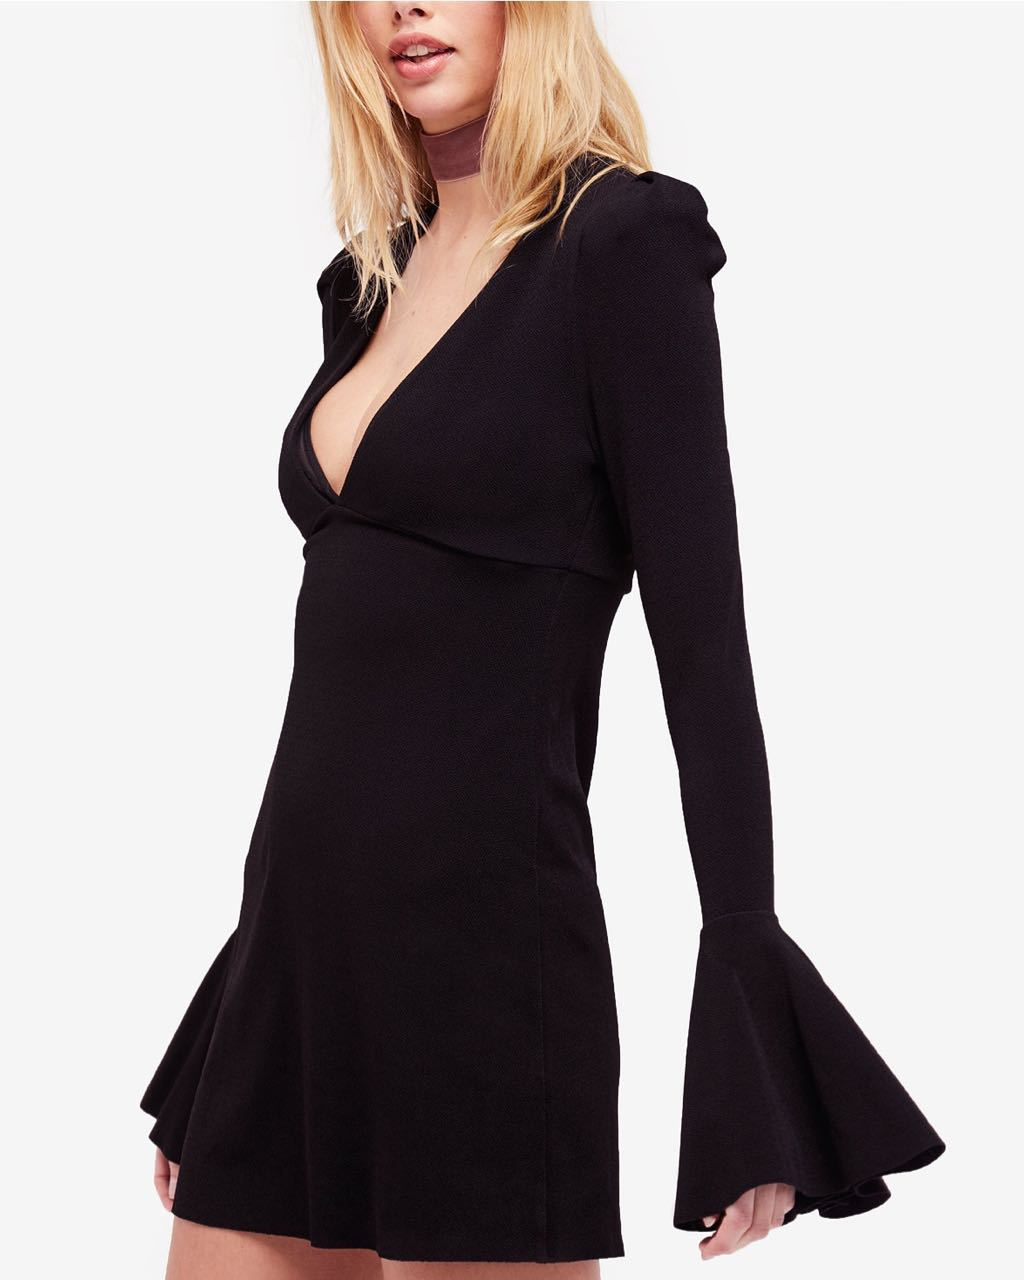 Free People Black Dress with Bell Sleeves